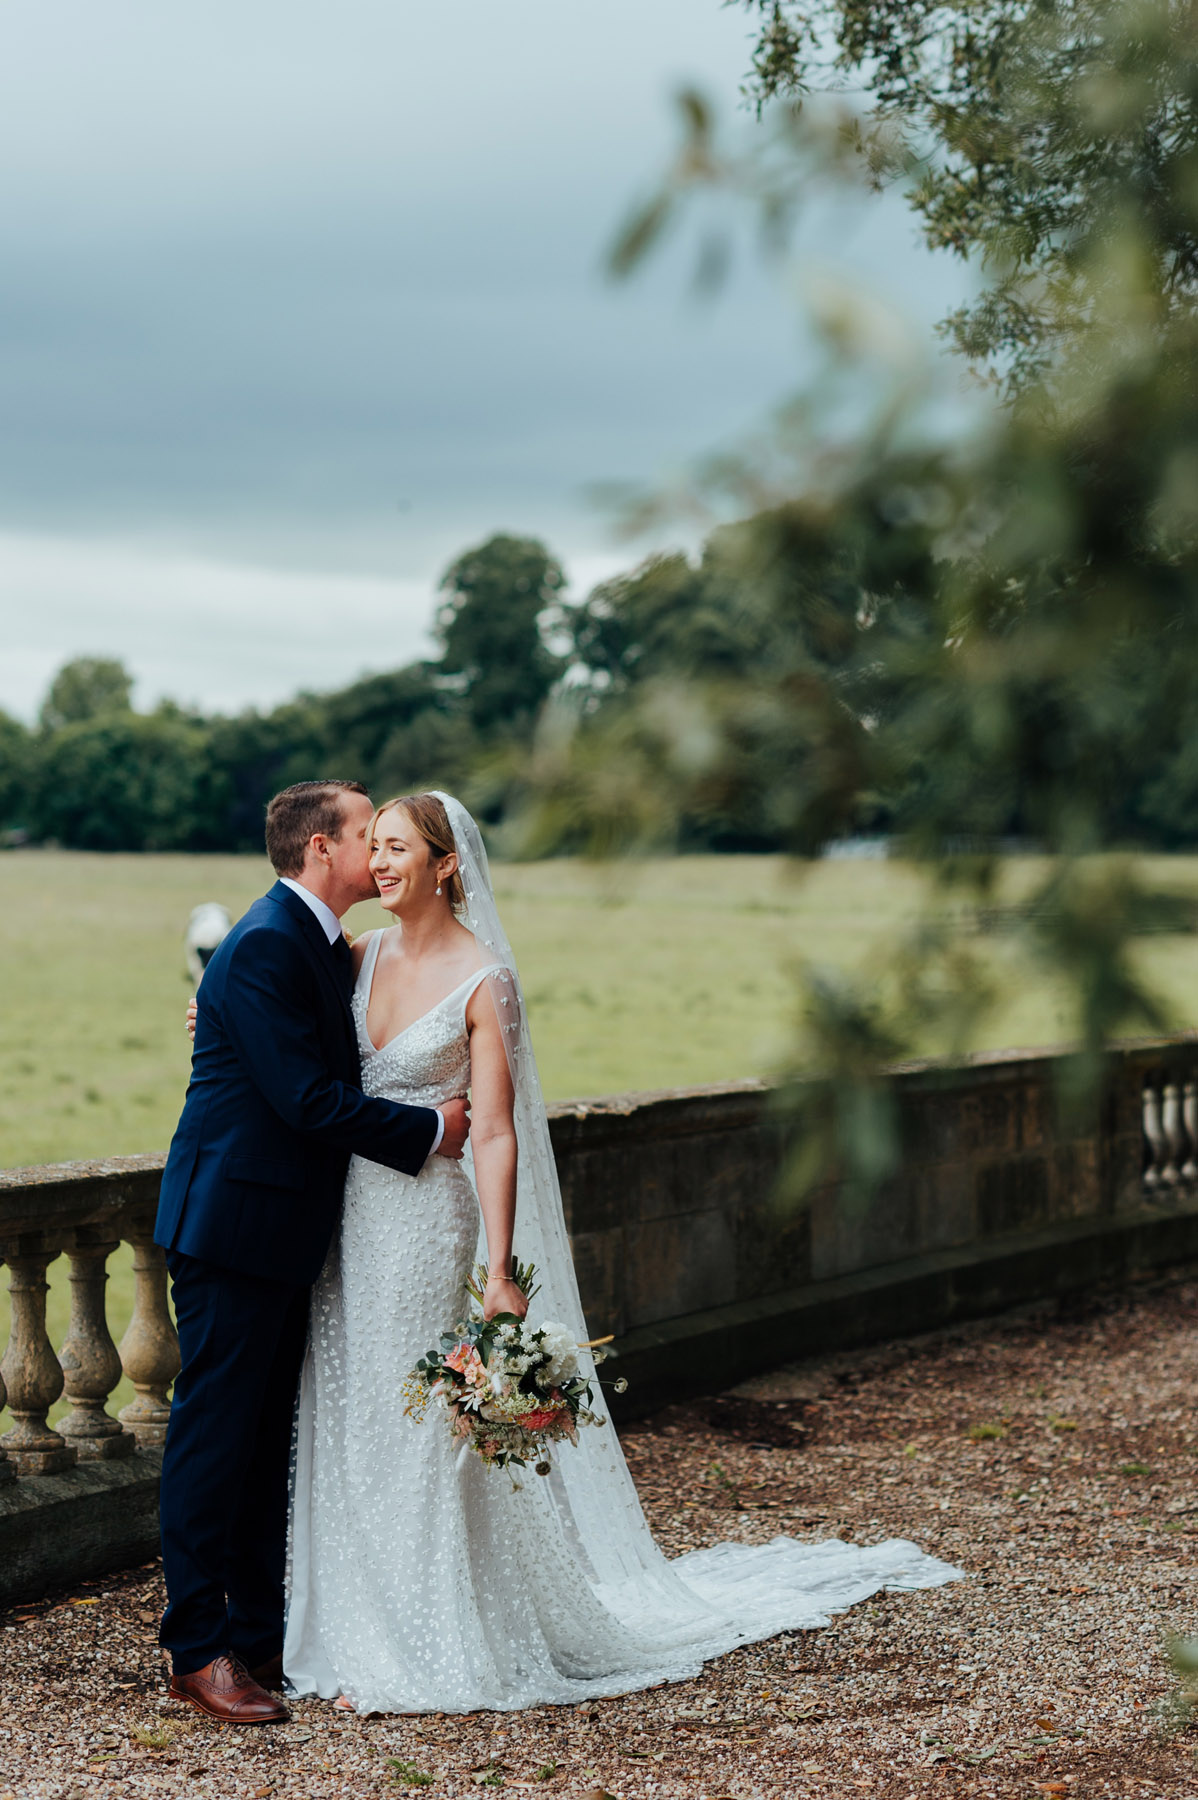 A Summer Wedding at Prestwold Hall for a Made With Love Bride ...